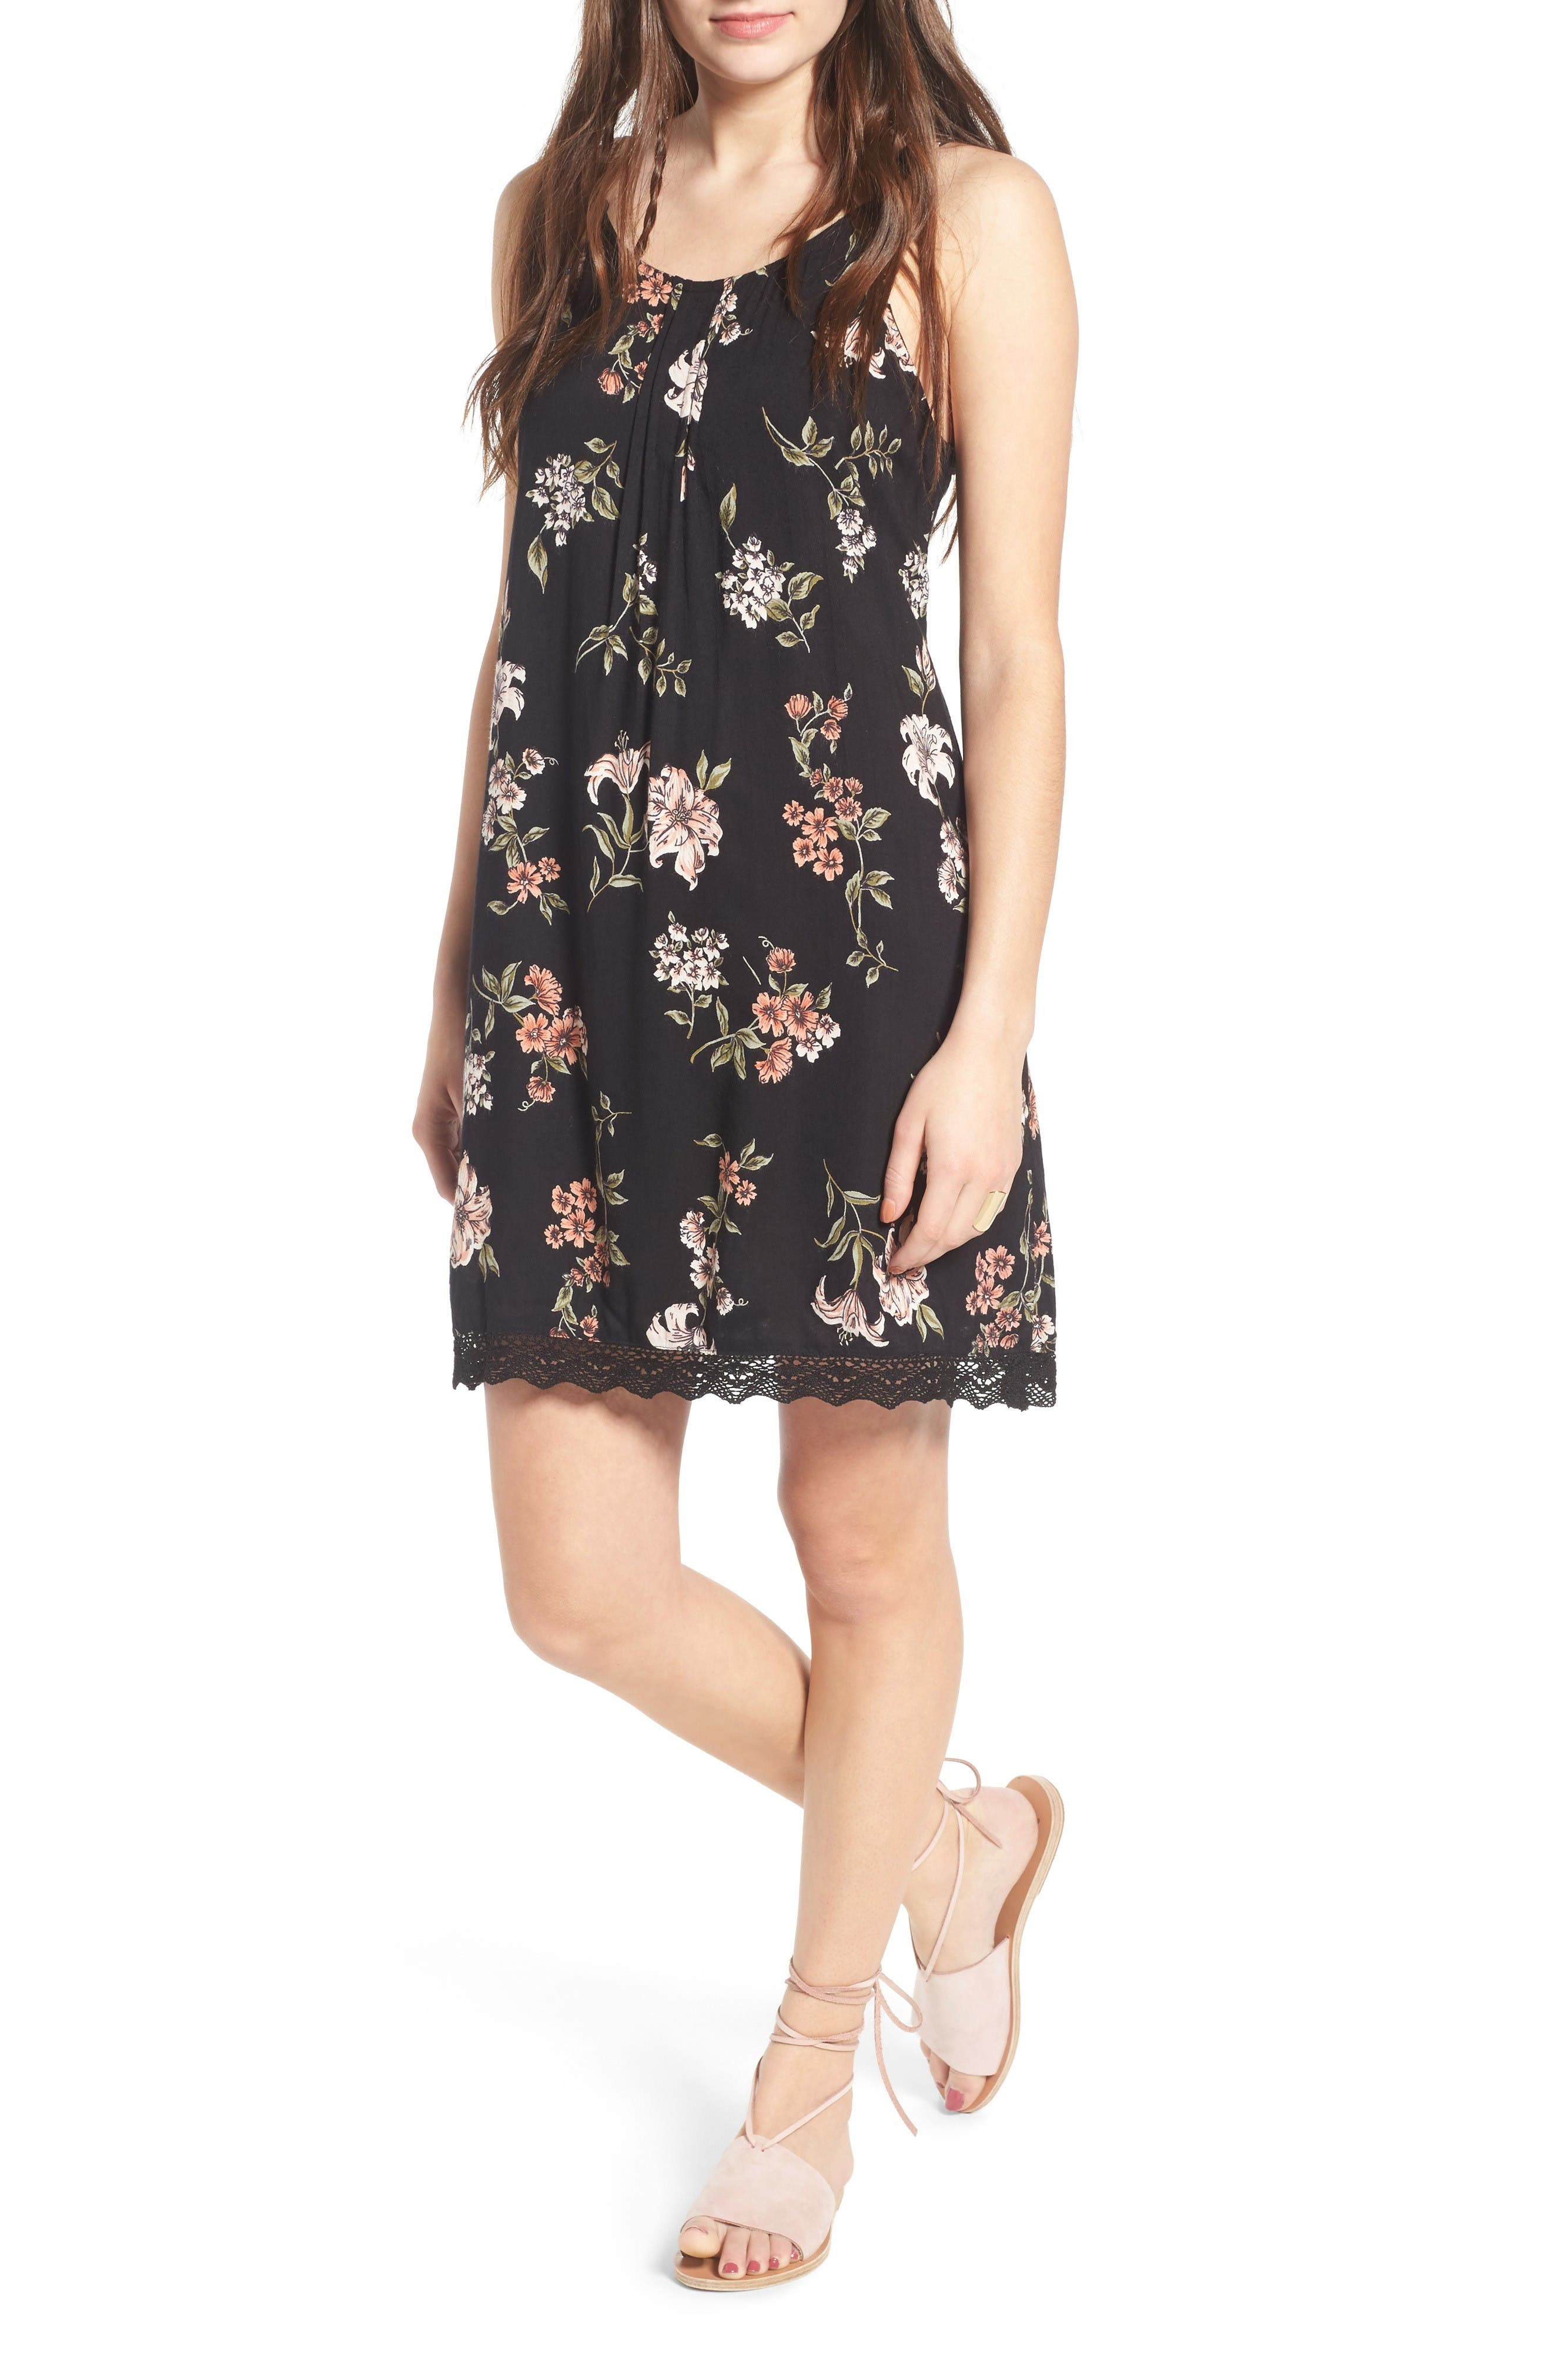 Alternate Image 1 Selected - Angie Floral Print Strappy Back Dress